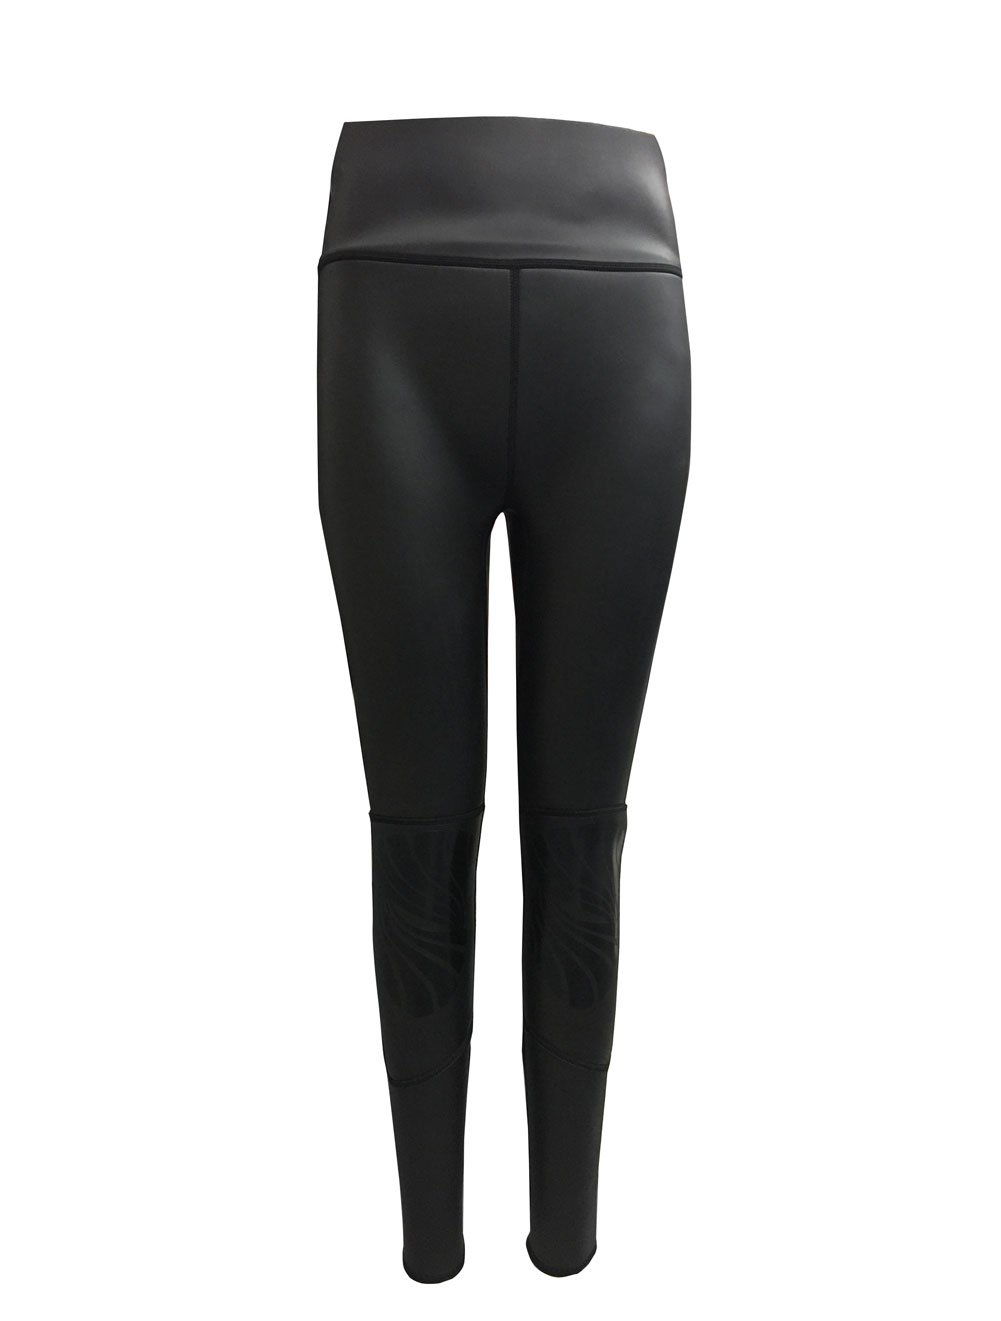 efd9fa0986c Amazon.com   divecica Woman Wetsuit Pants 3mm CR Smooth Skin Neoprene  Warmth Pants for Surfing Diving   Sports   Outdoors